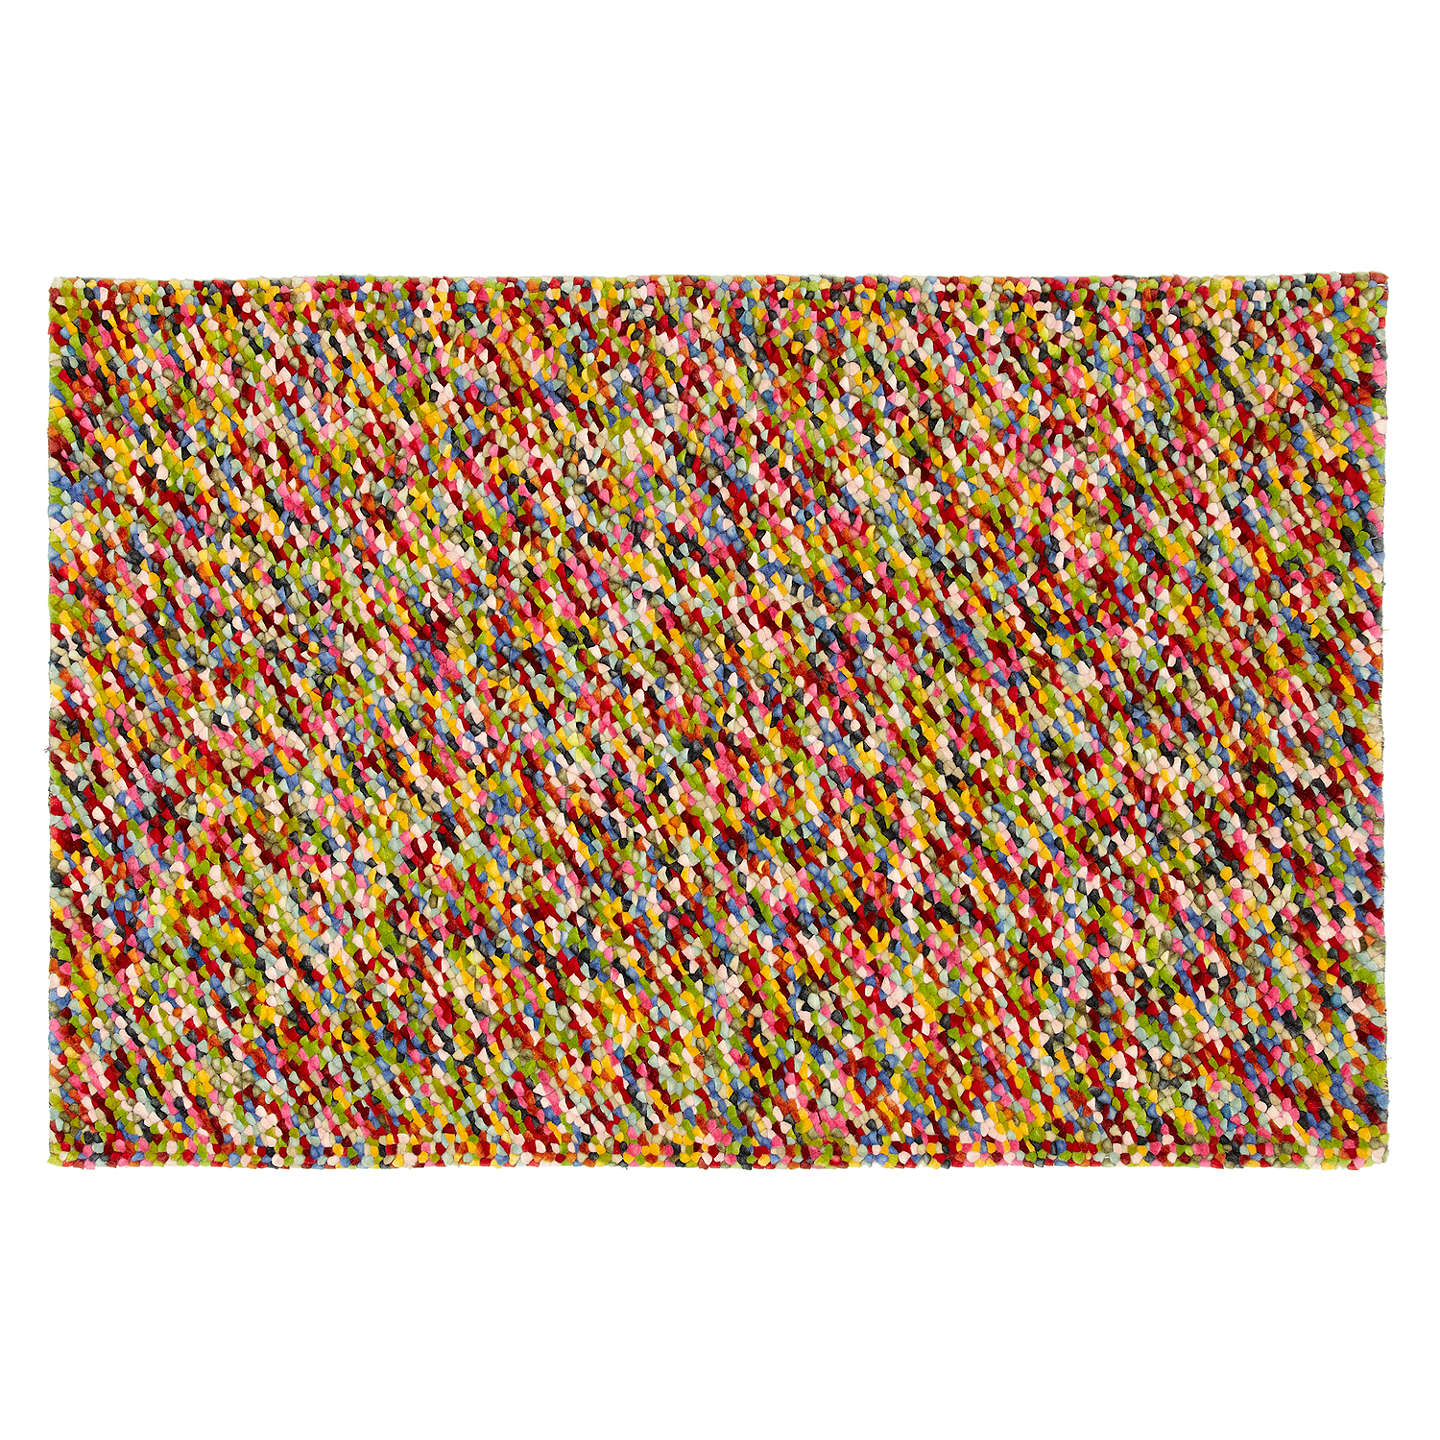 John Lewis Jelly Beans Rug New Multi L300 X W200cm Online At Johnlewis